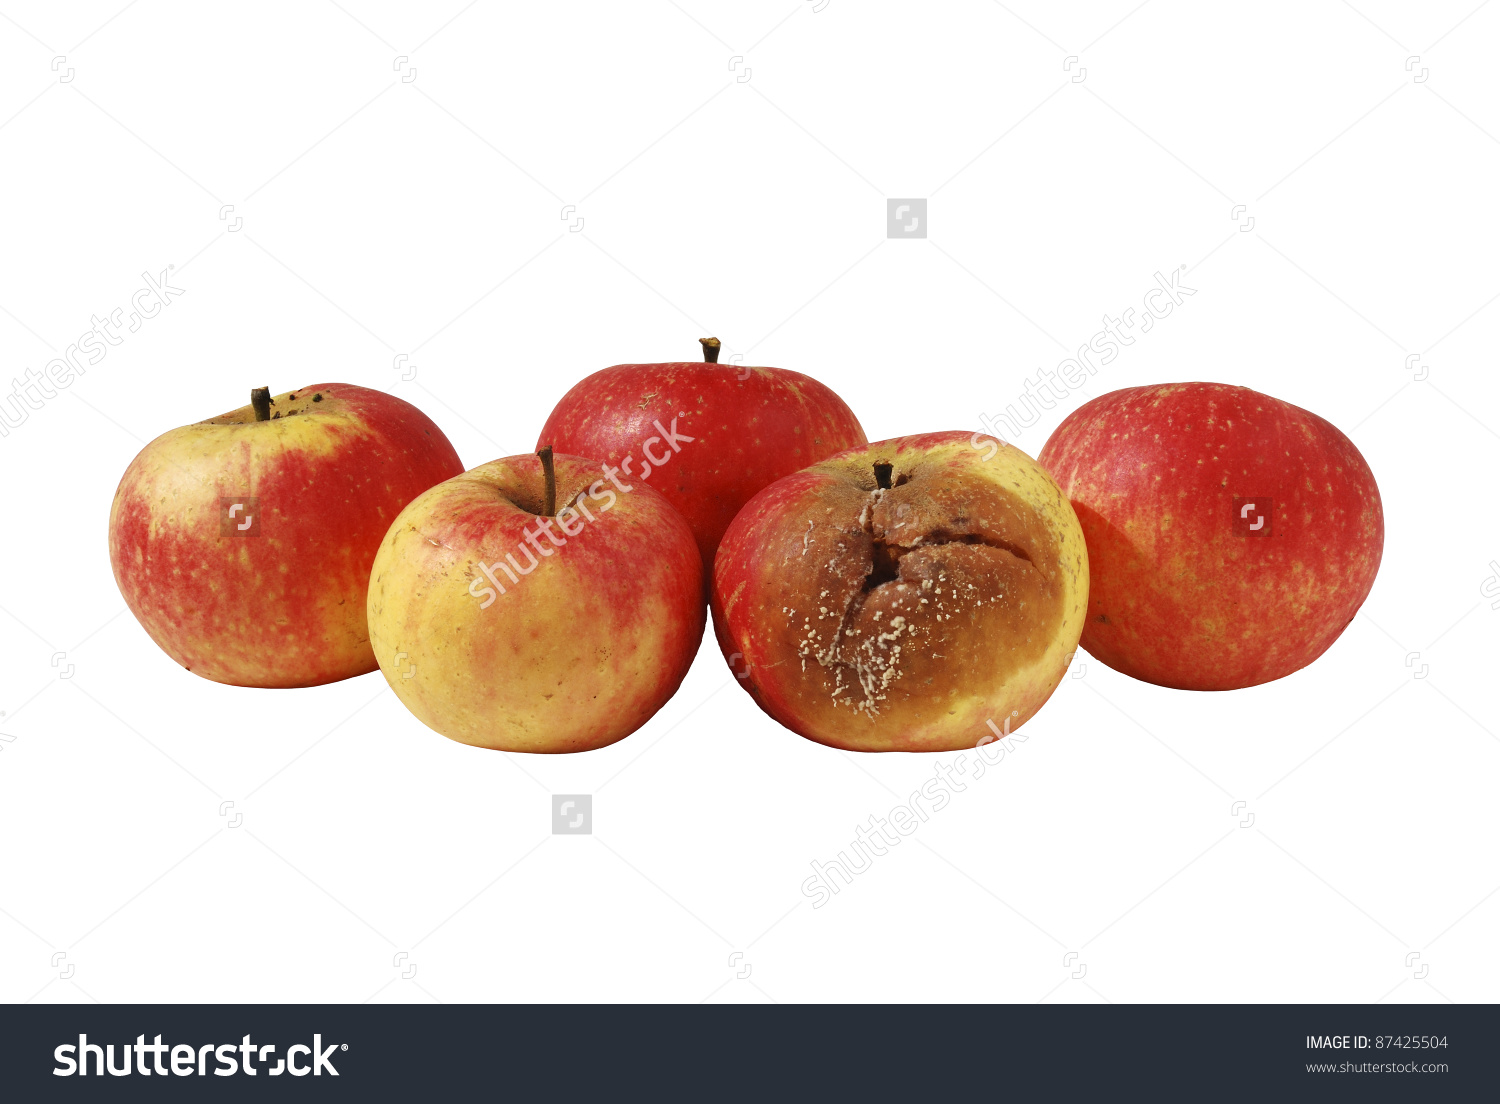 One Rotten, Bad, Decaying Apple In Bunch Of Four Good Apples Stock.